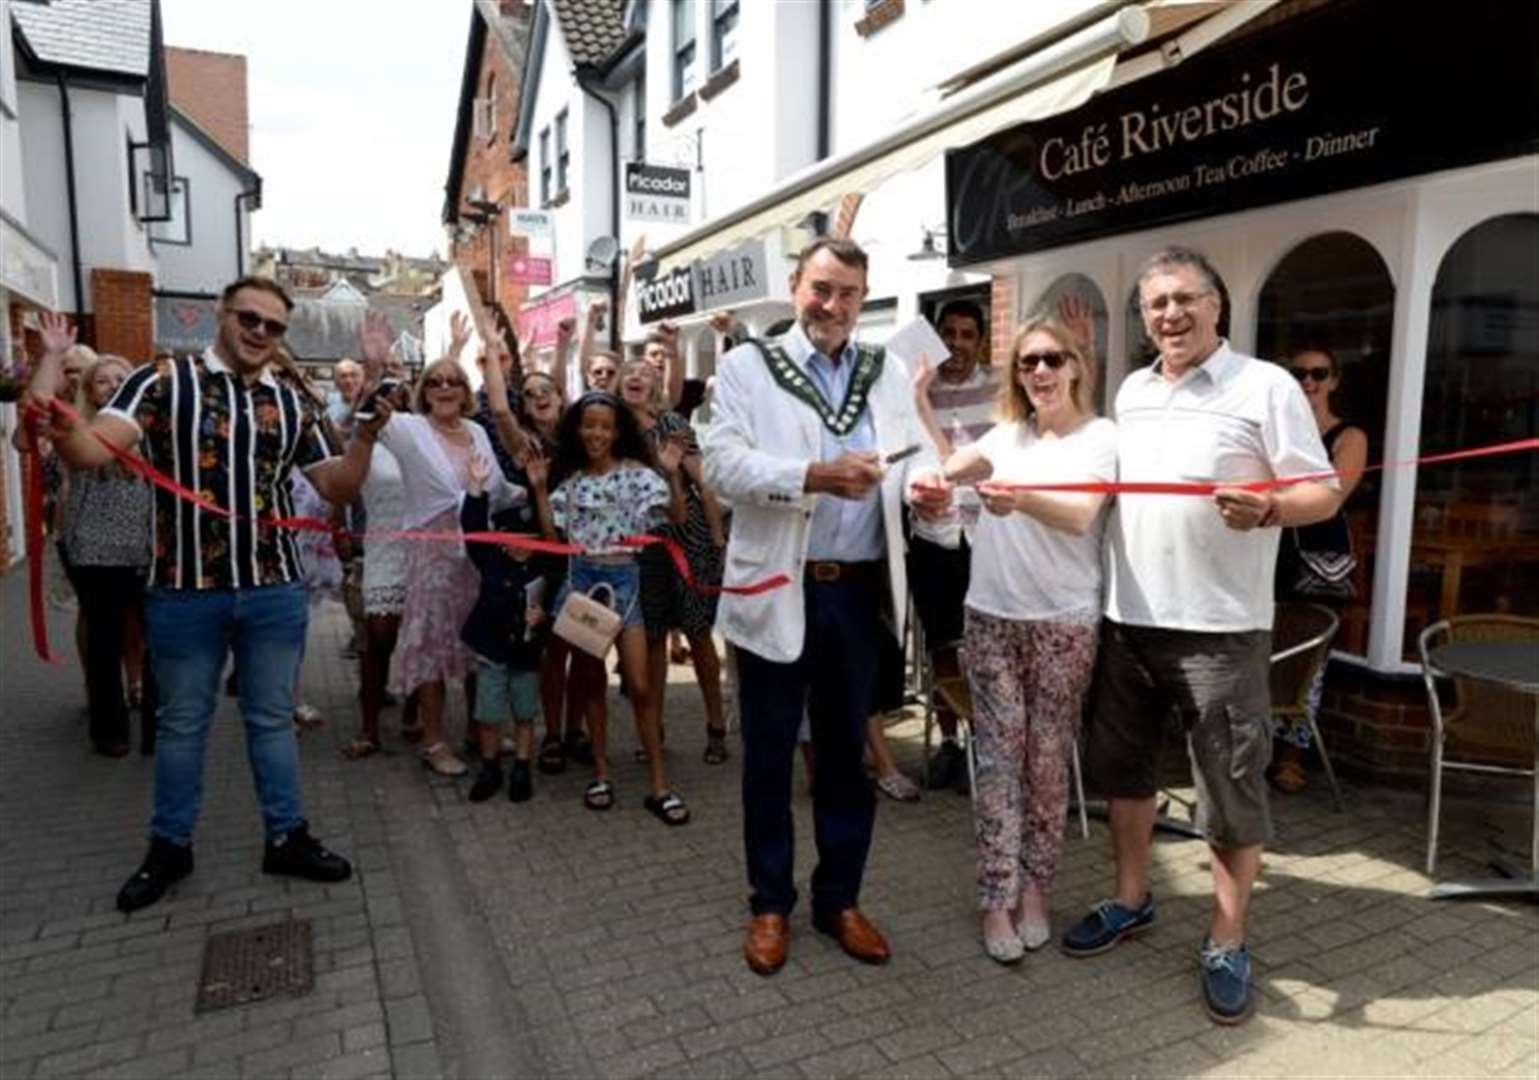 Stortford couple open new cafe in town centre